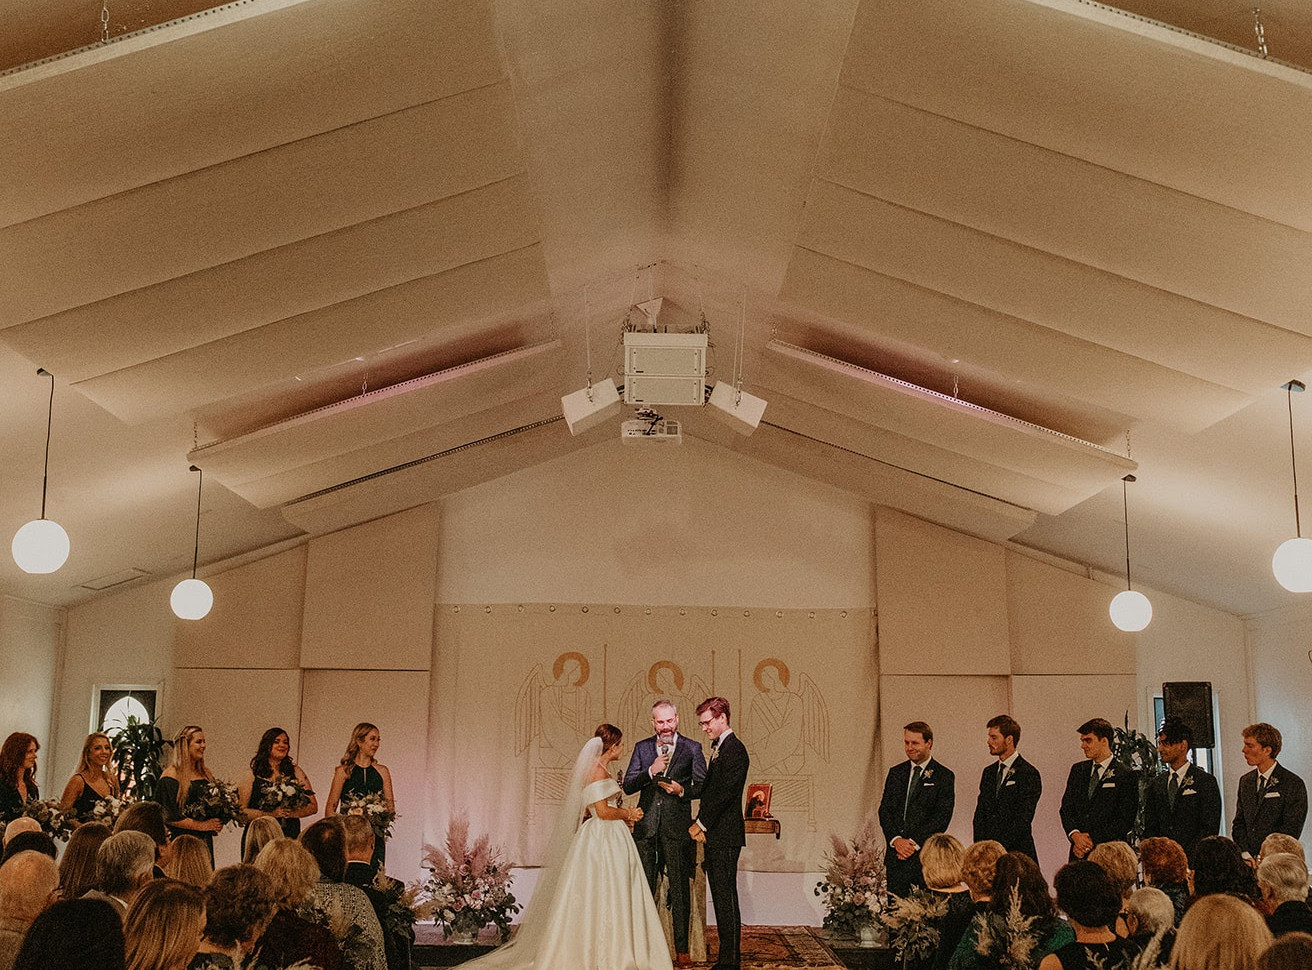 Ceremony-LastShotsatChurch-73.jpg